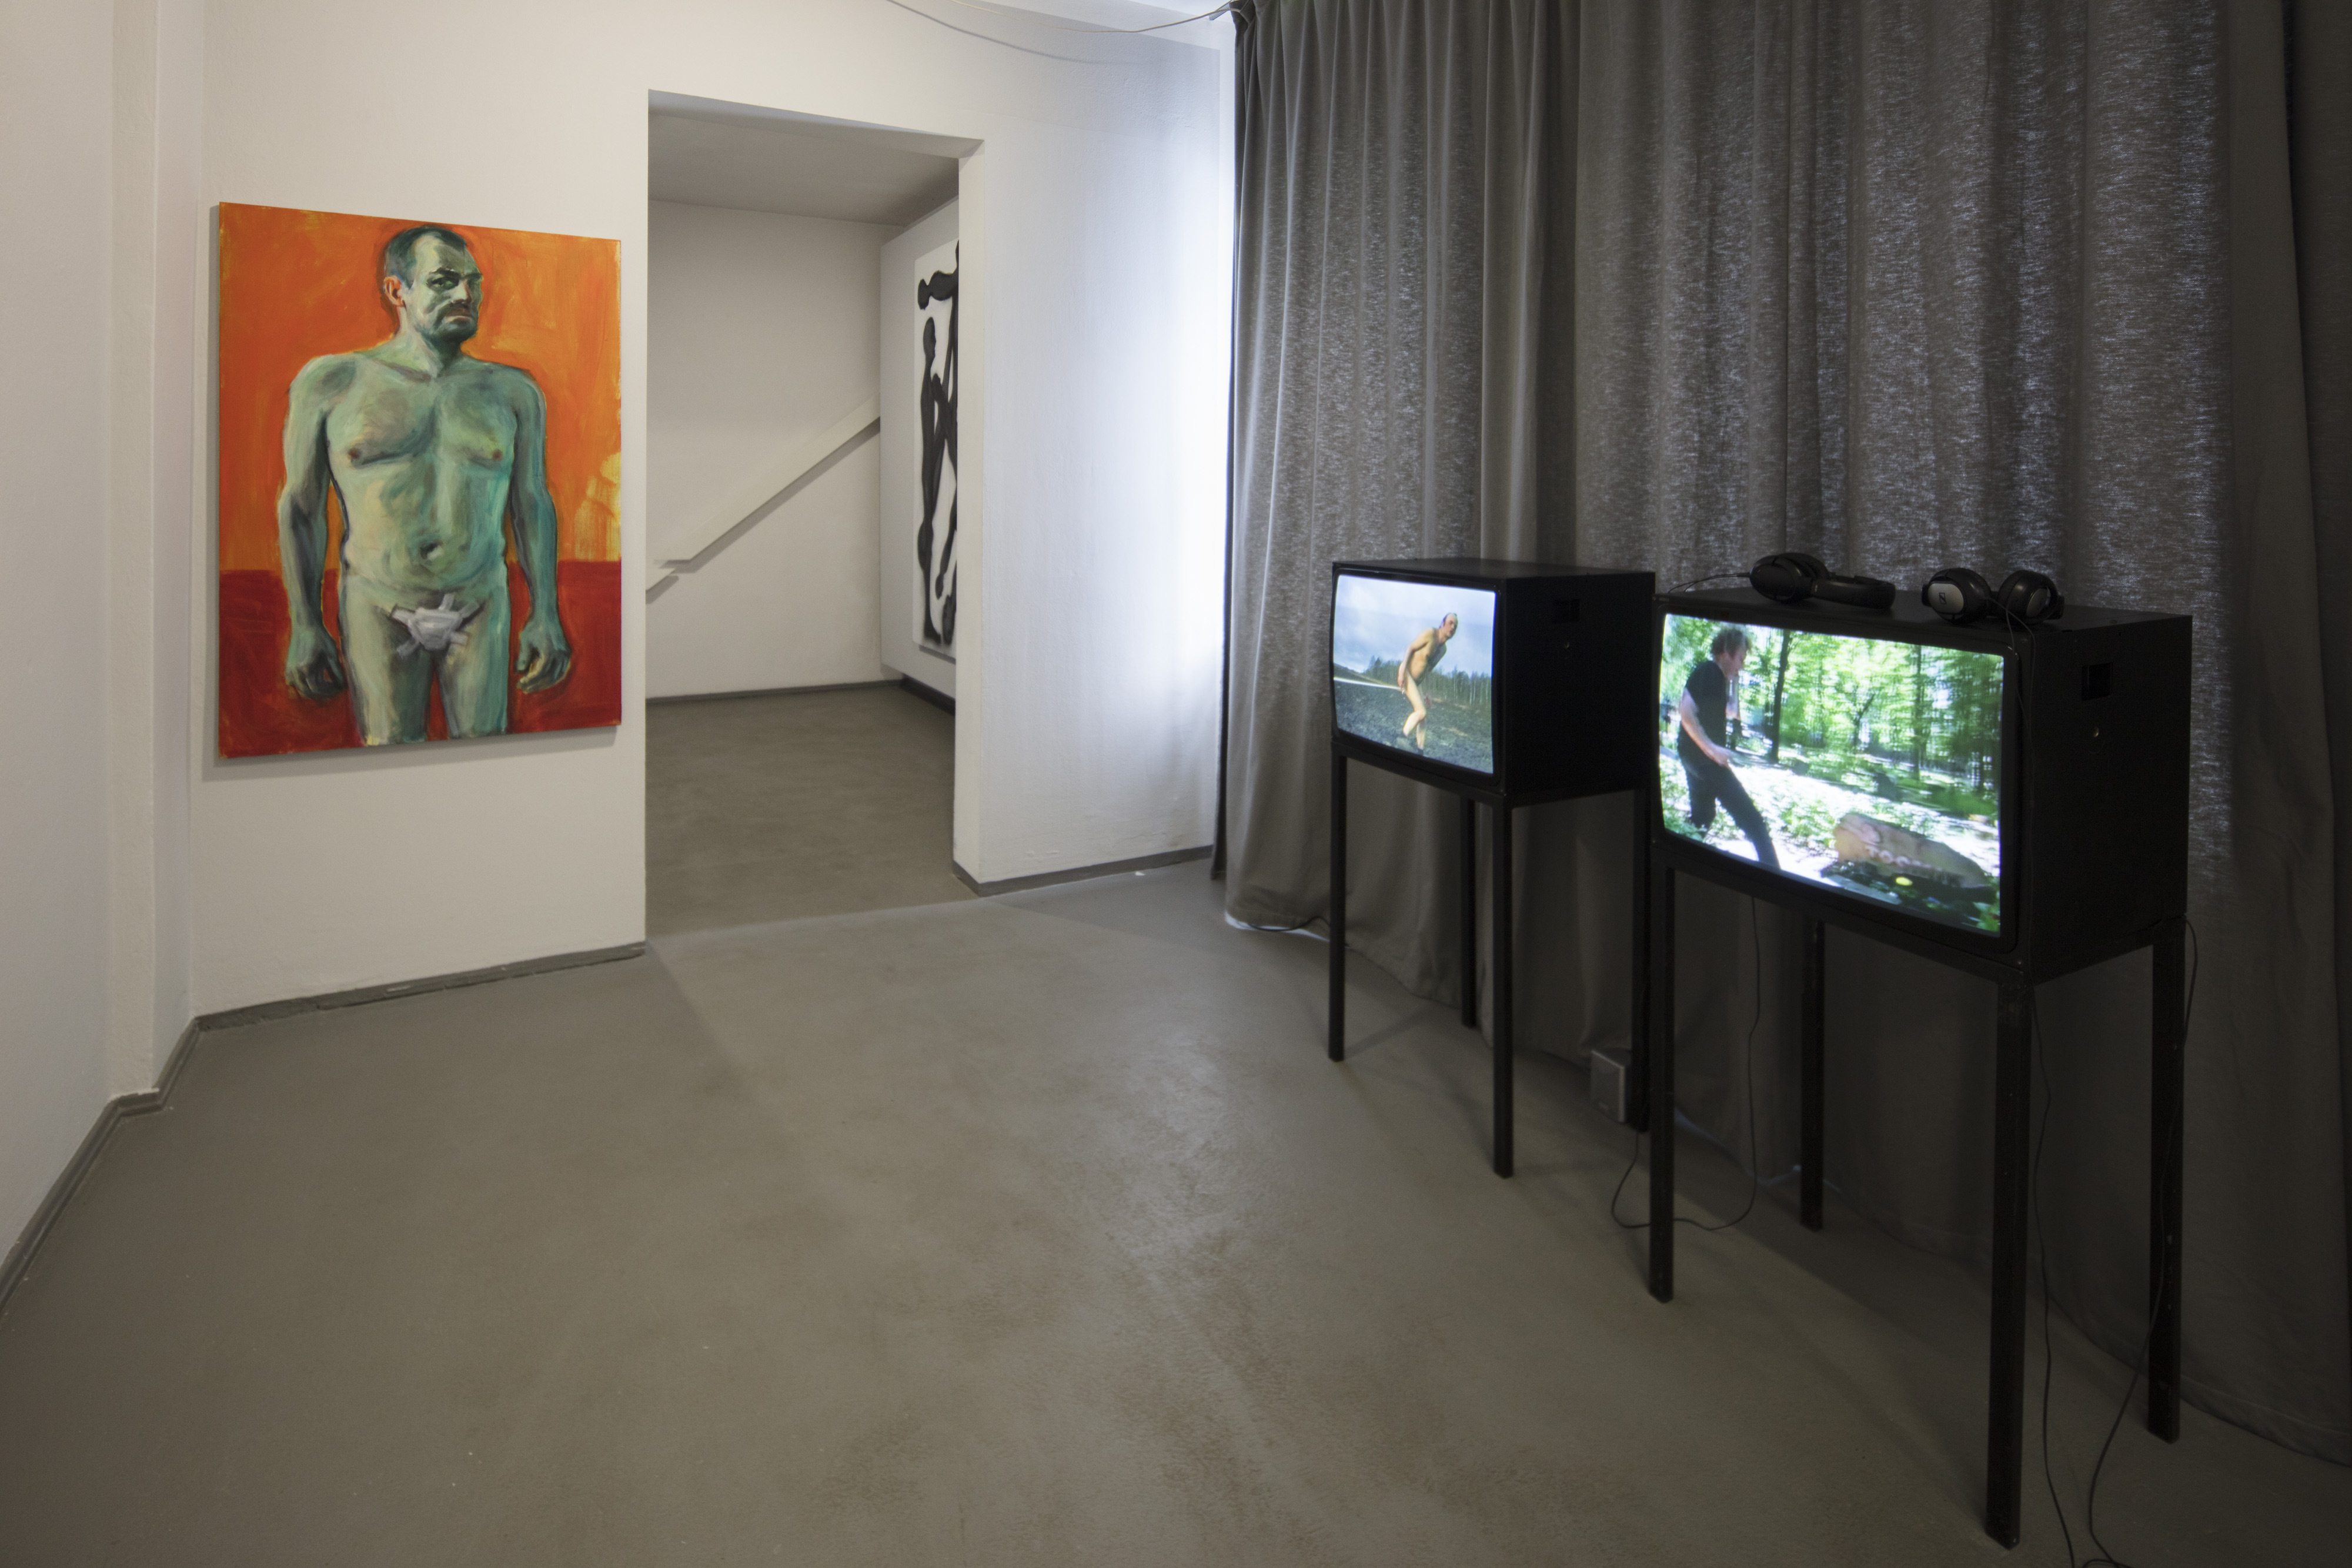 View of the exhibition Jaan Toomik: Selfportrait with cut-off penis (Homage to Van Gogh), 2015, Kunsthaus Dresden